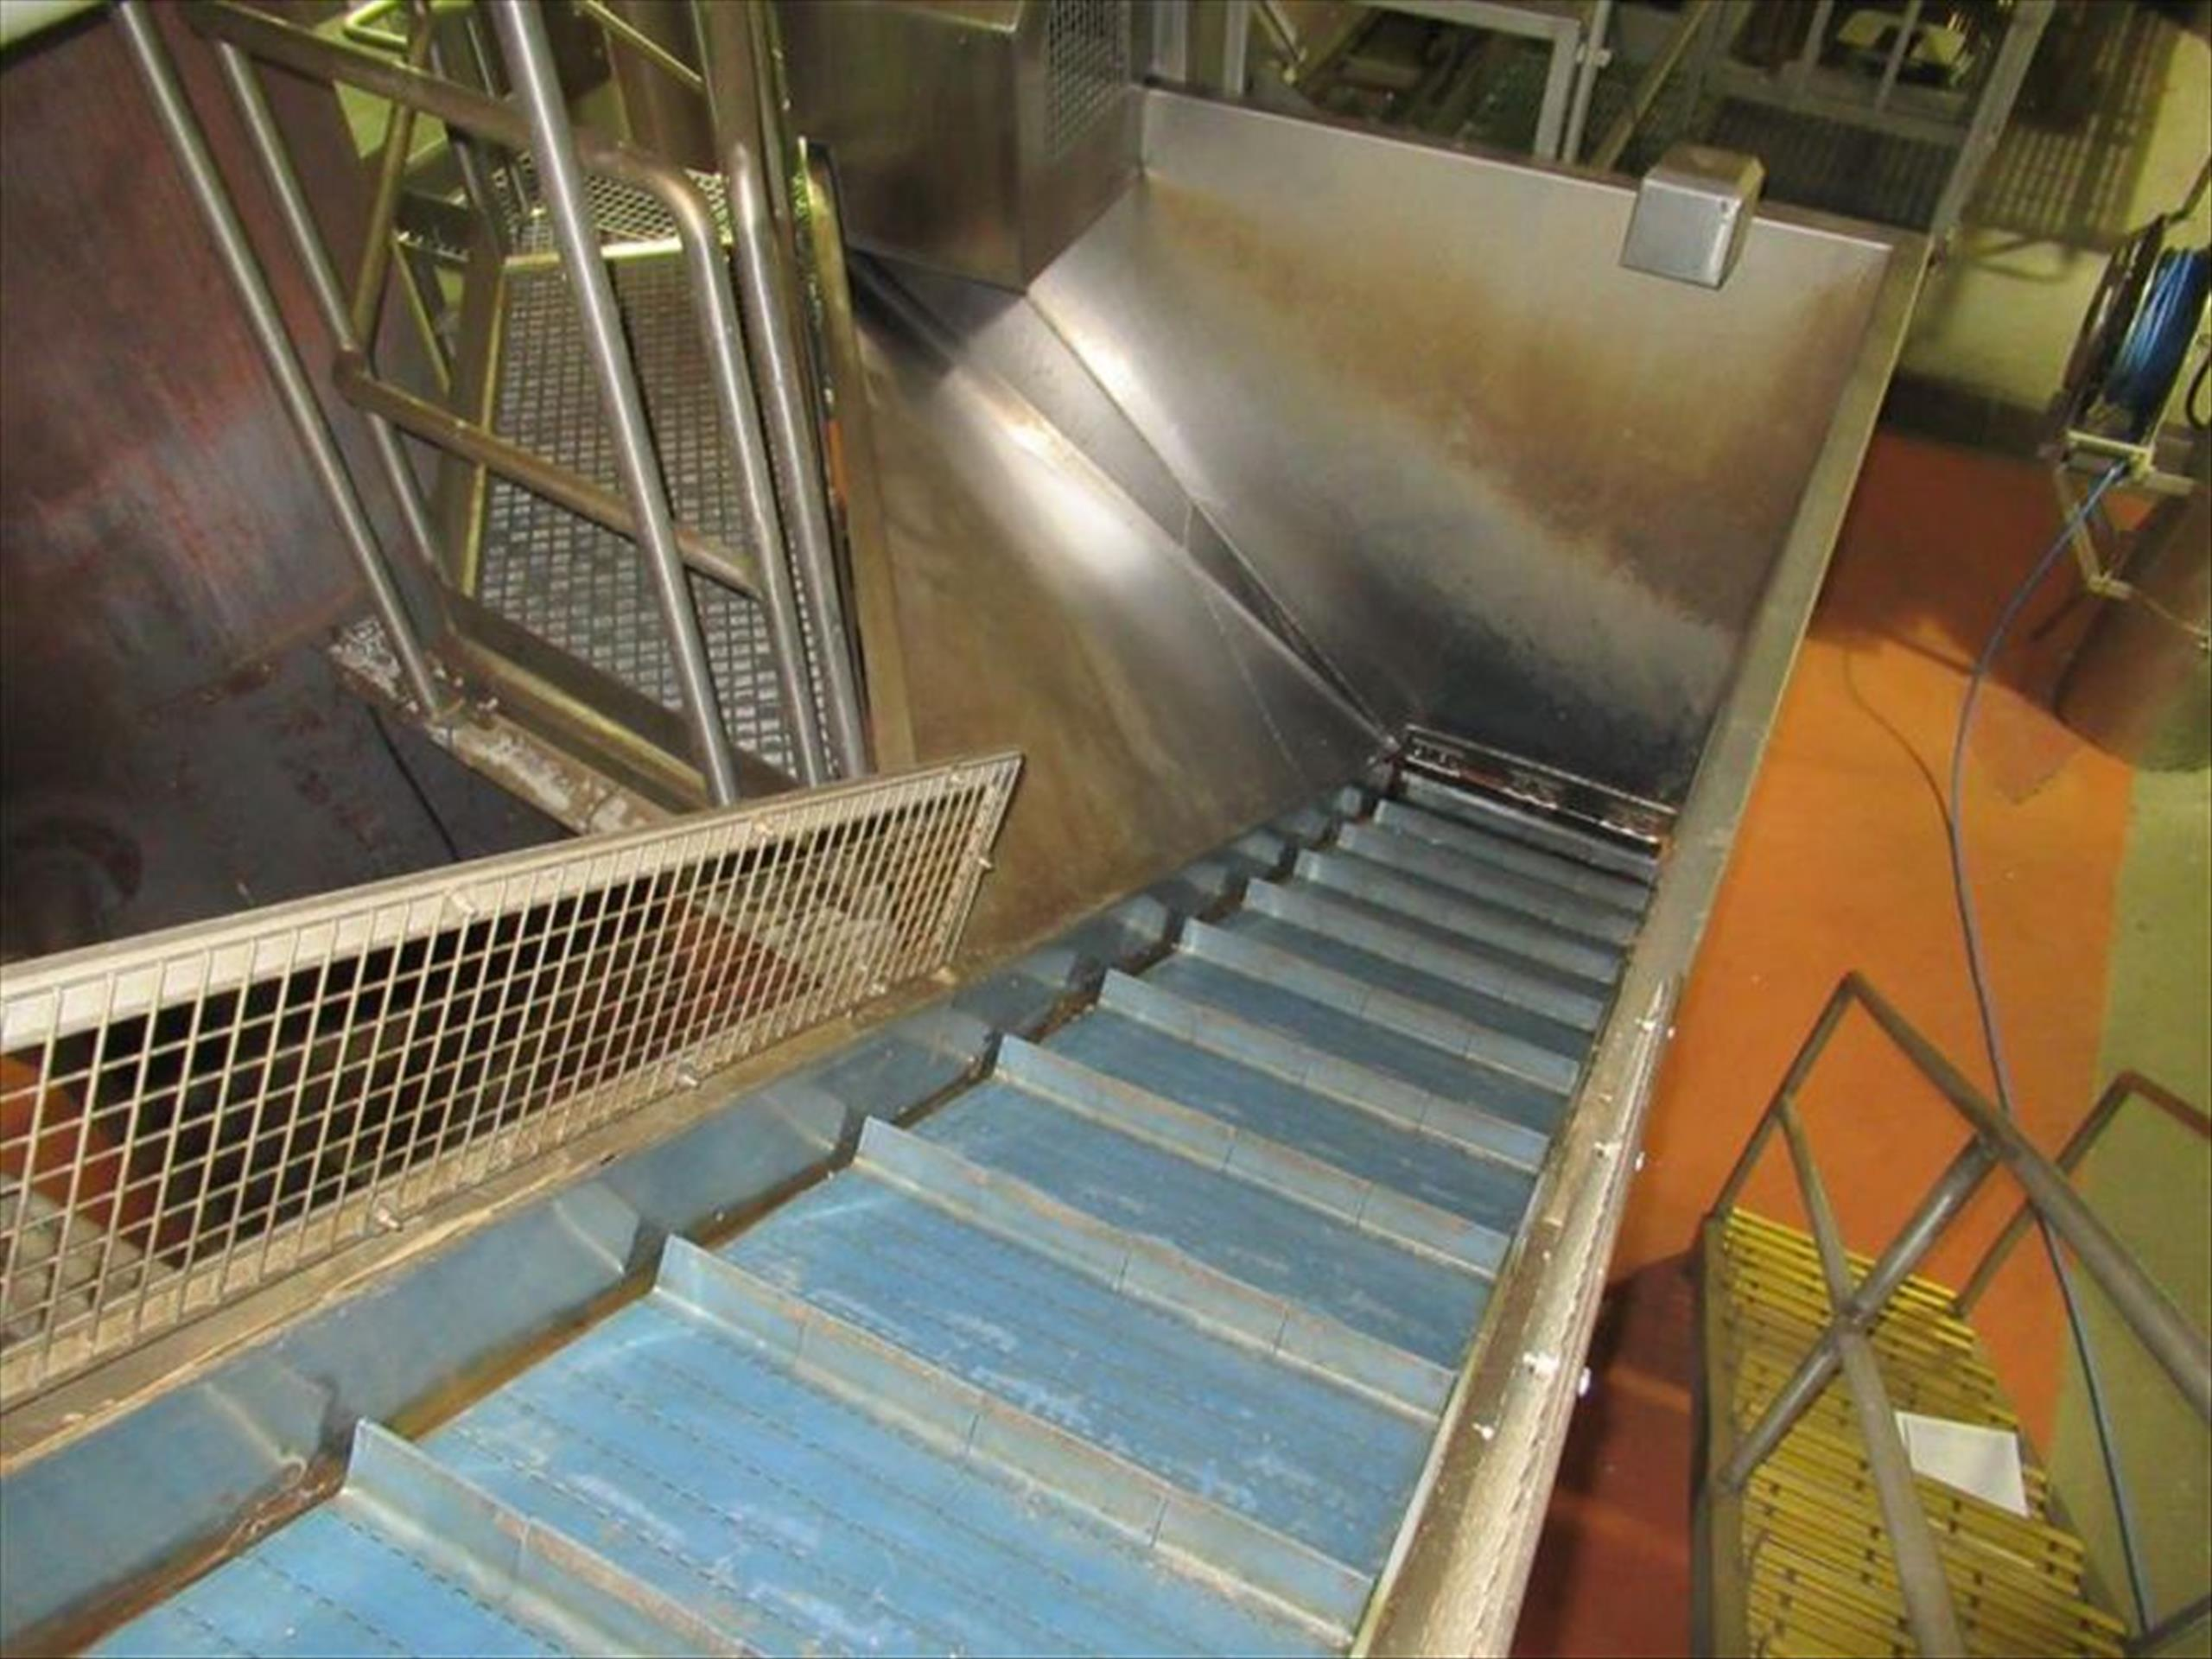 Thermoplastic hopper elevator conveyor approx 24 in w x 13 ft l x 14 ft h with flighted modular belt - Image 2 of 2